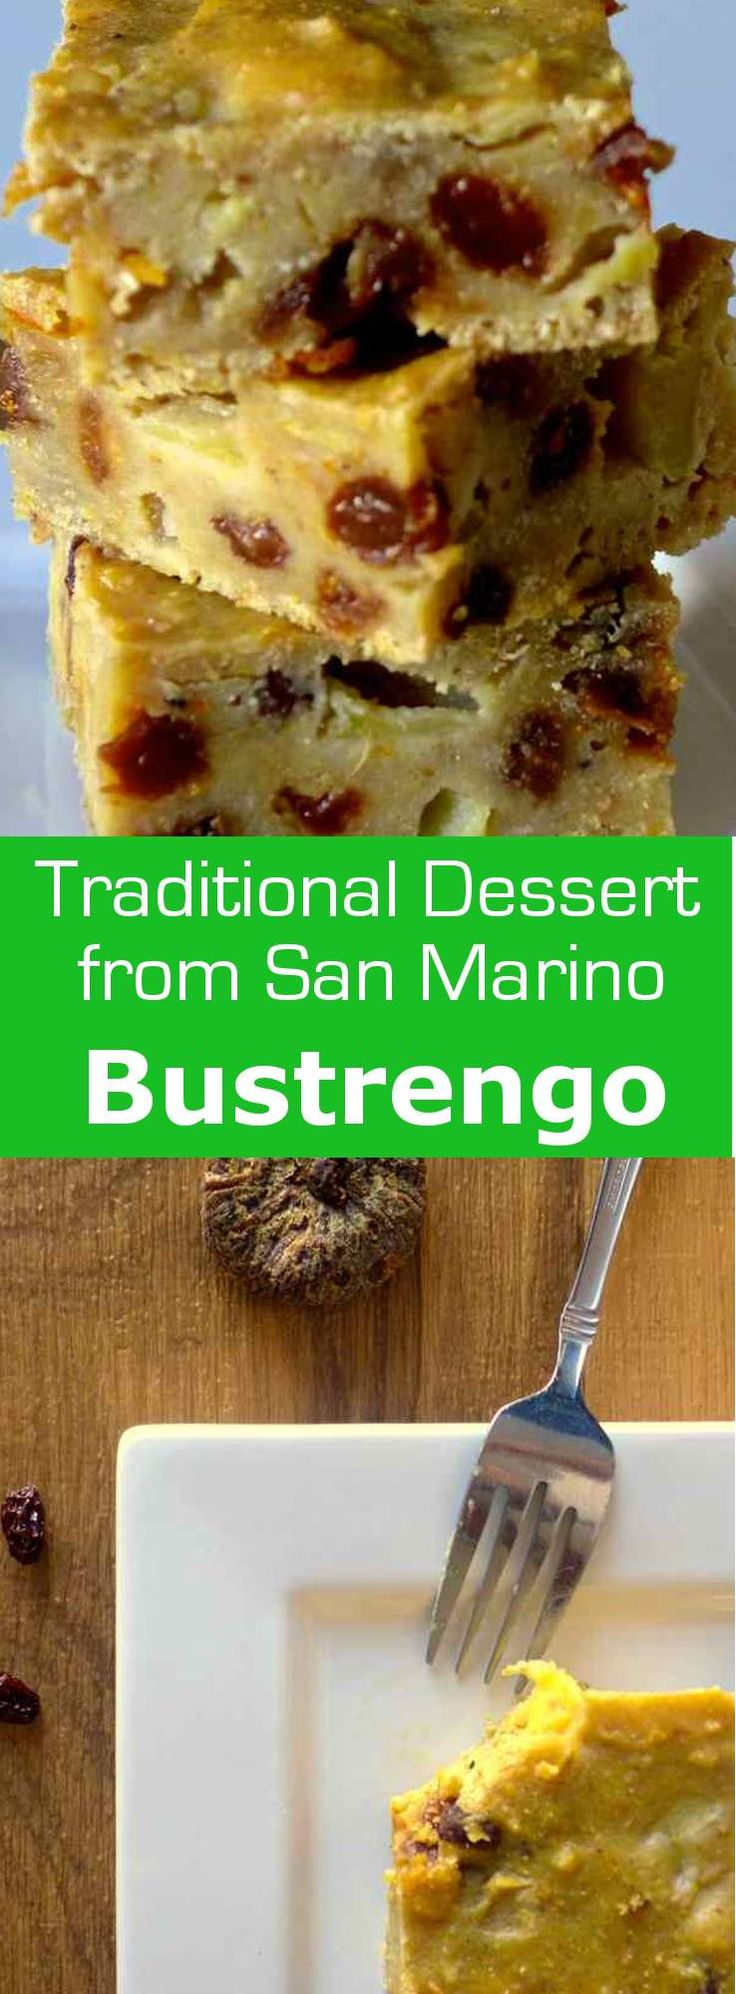 Bustrengo is a fruit cake from San Marino as well as Bologna that is ...